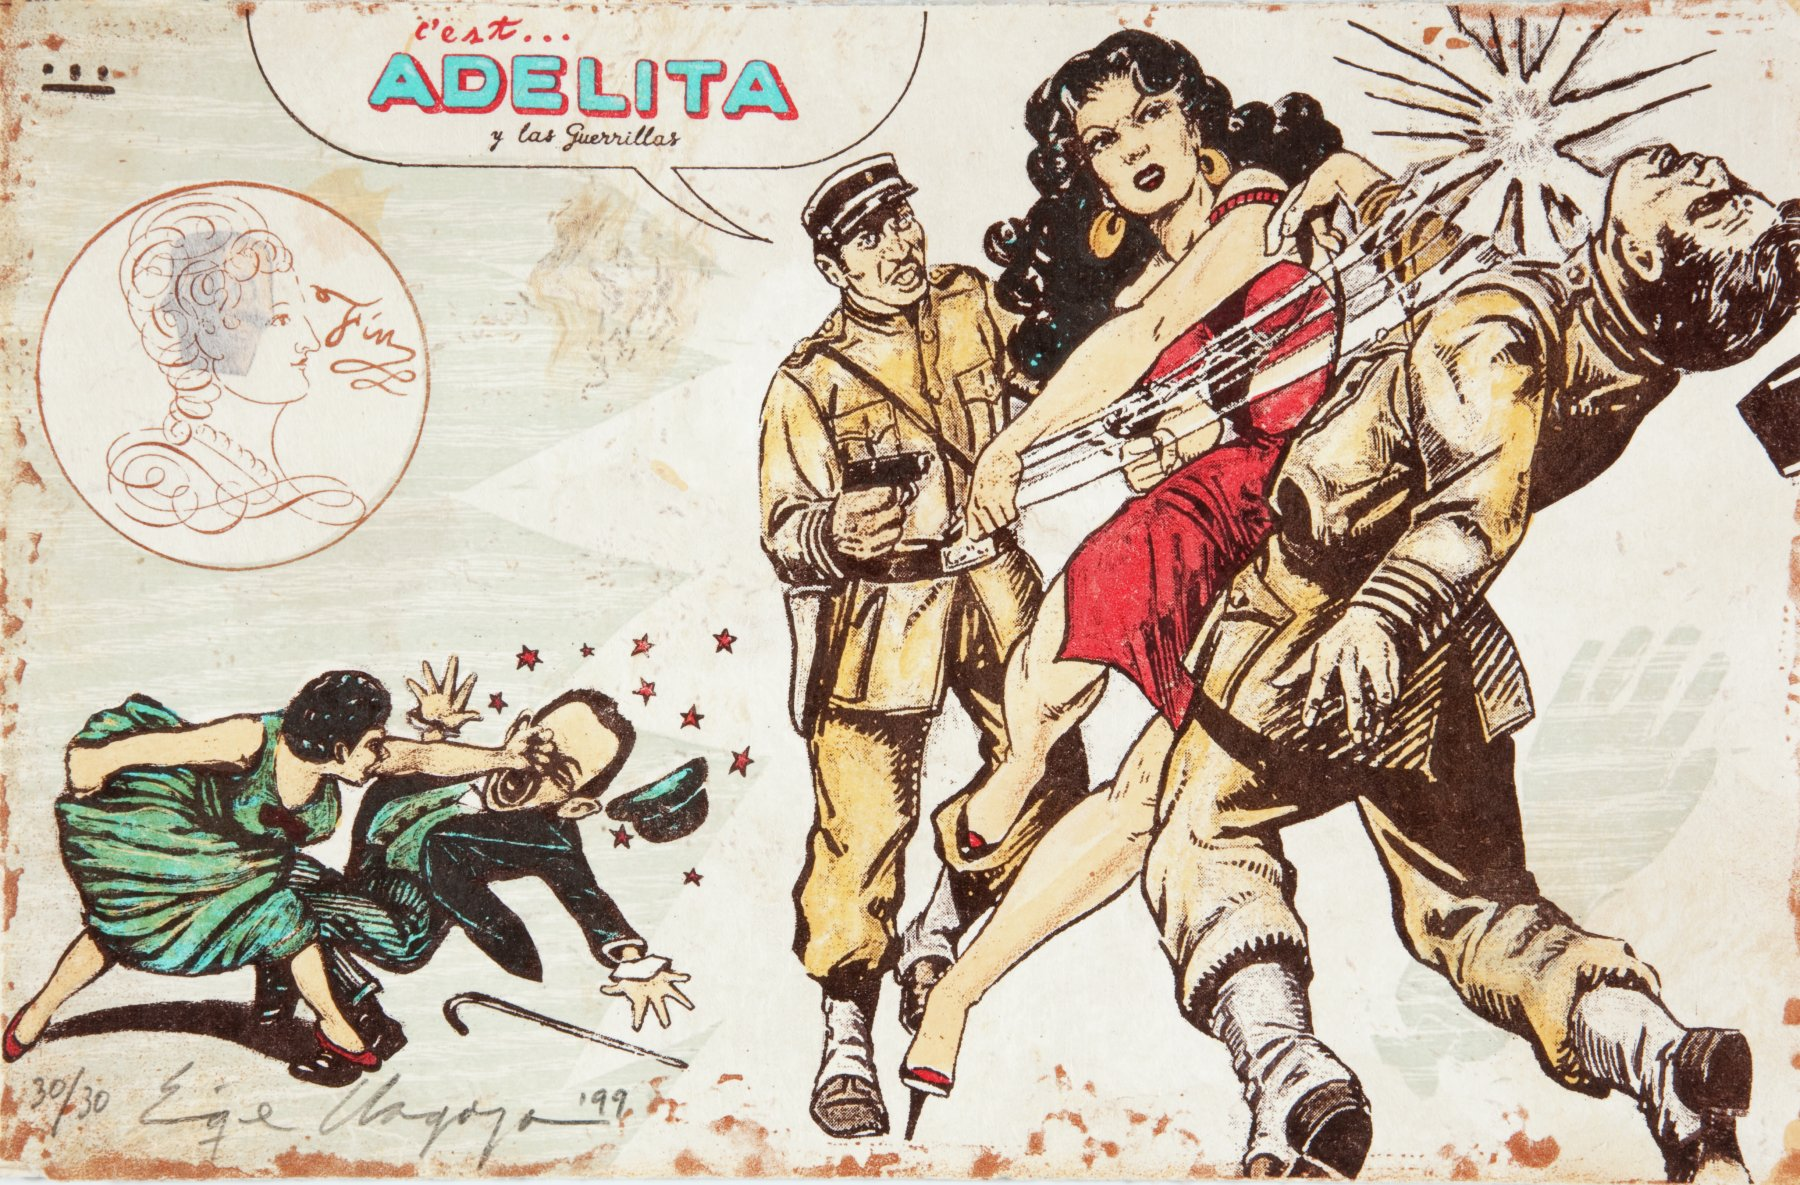 Woman in a short red dress and heels punching a man in a uniform